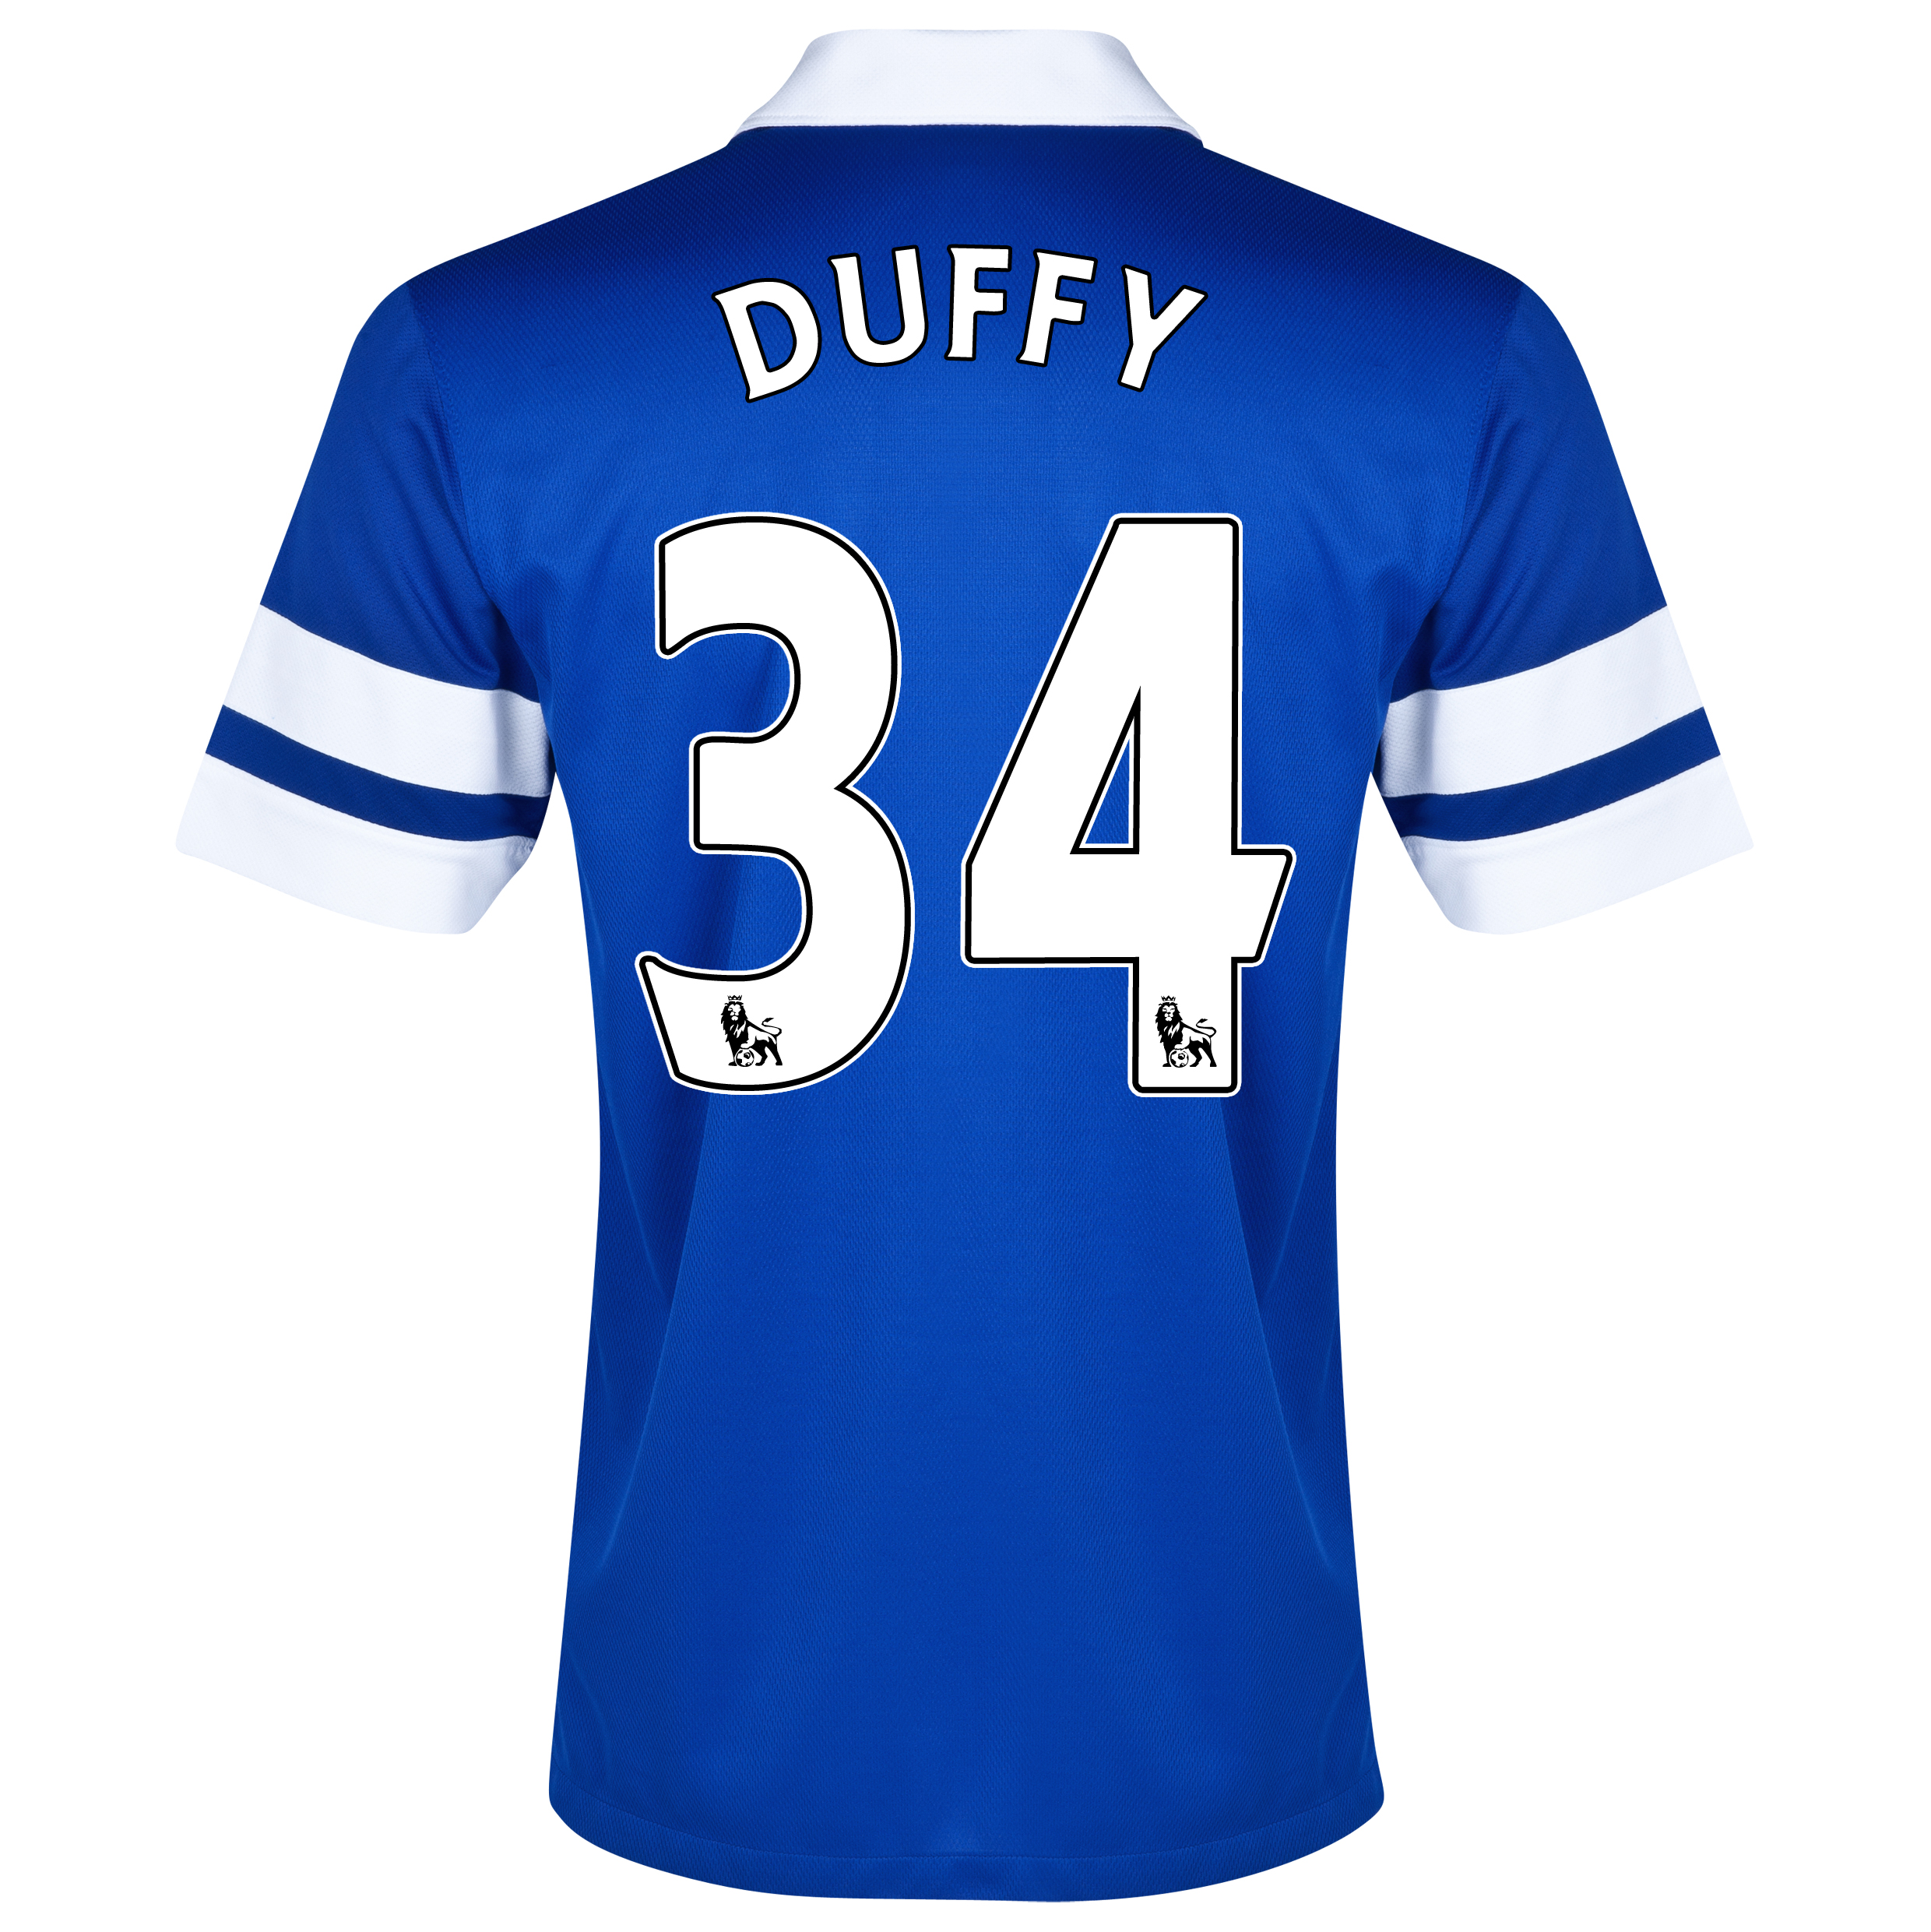 Everton Home Shirt 2013/14 Blue with Duffy 34 printing